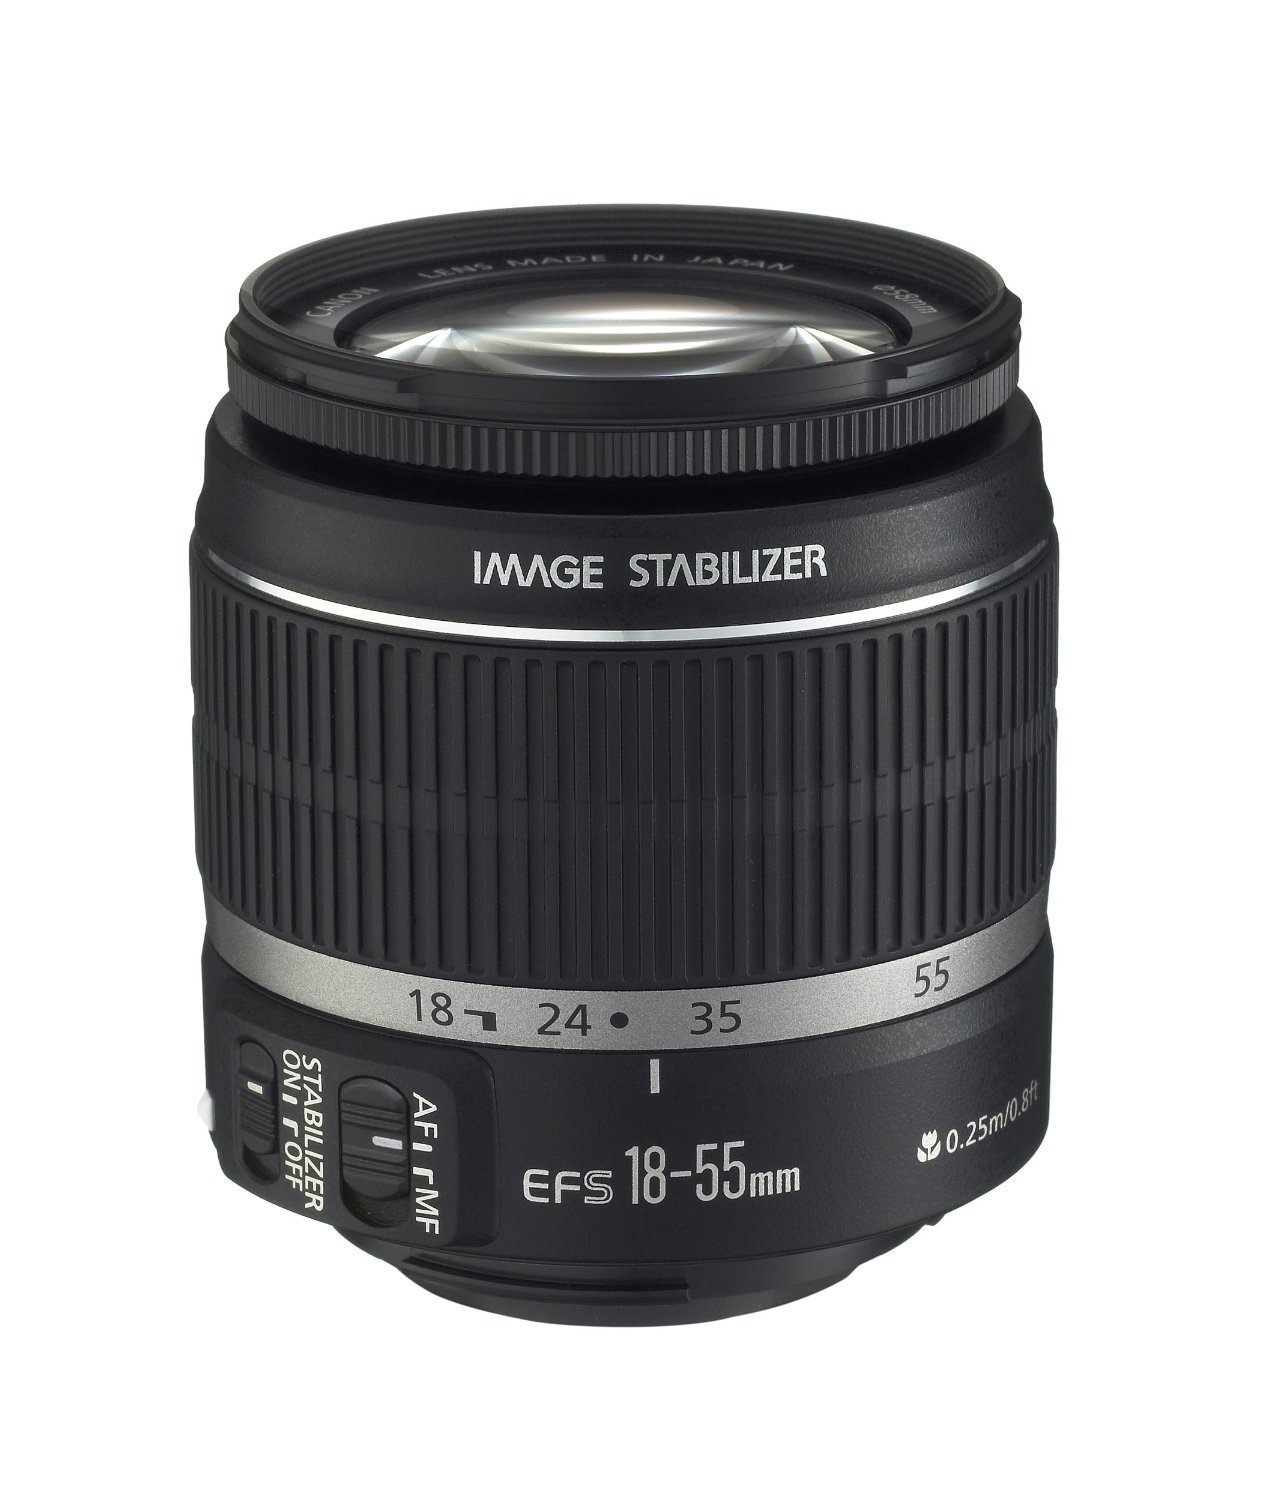 Canon EF-S 18-55mm f/3.5-5.6 IS II SLR Lens White Box by Canon